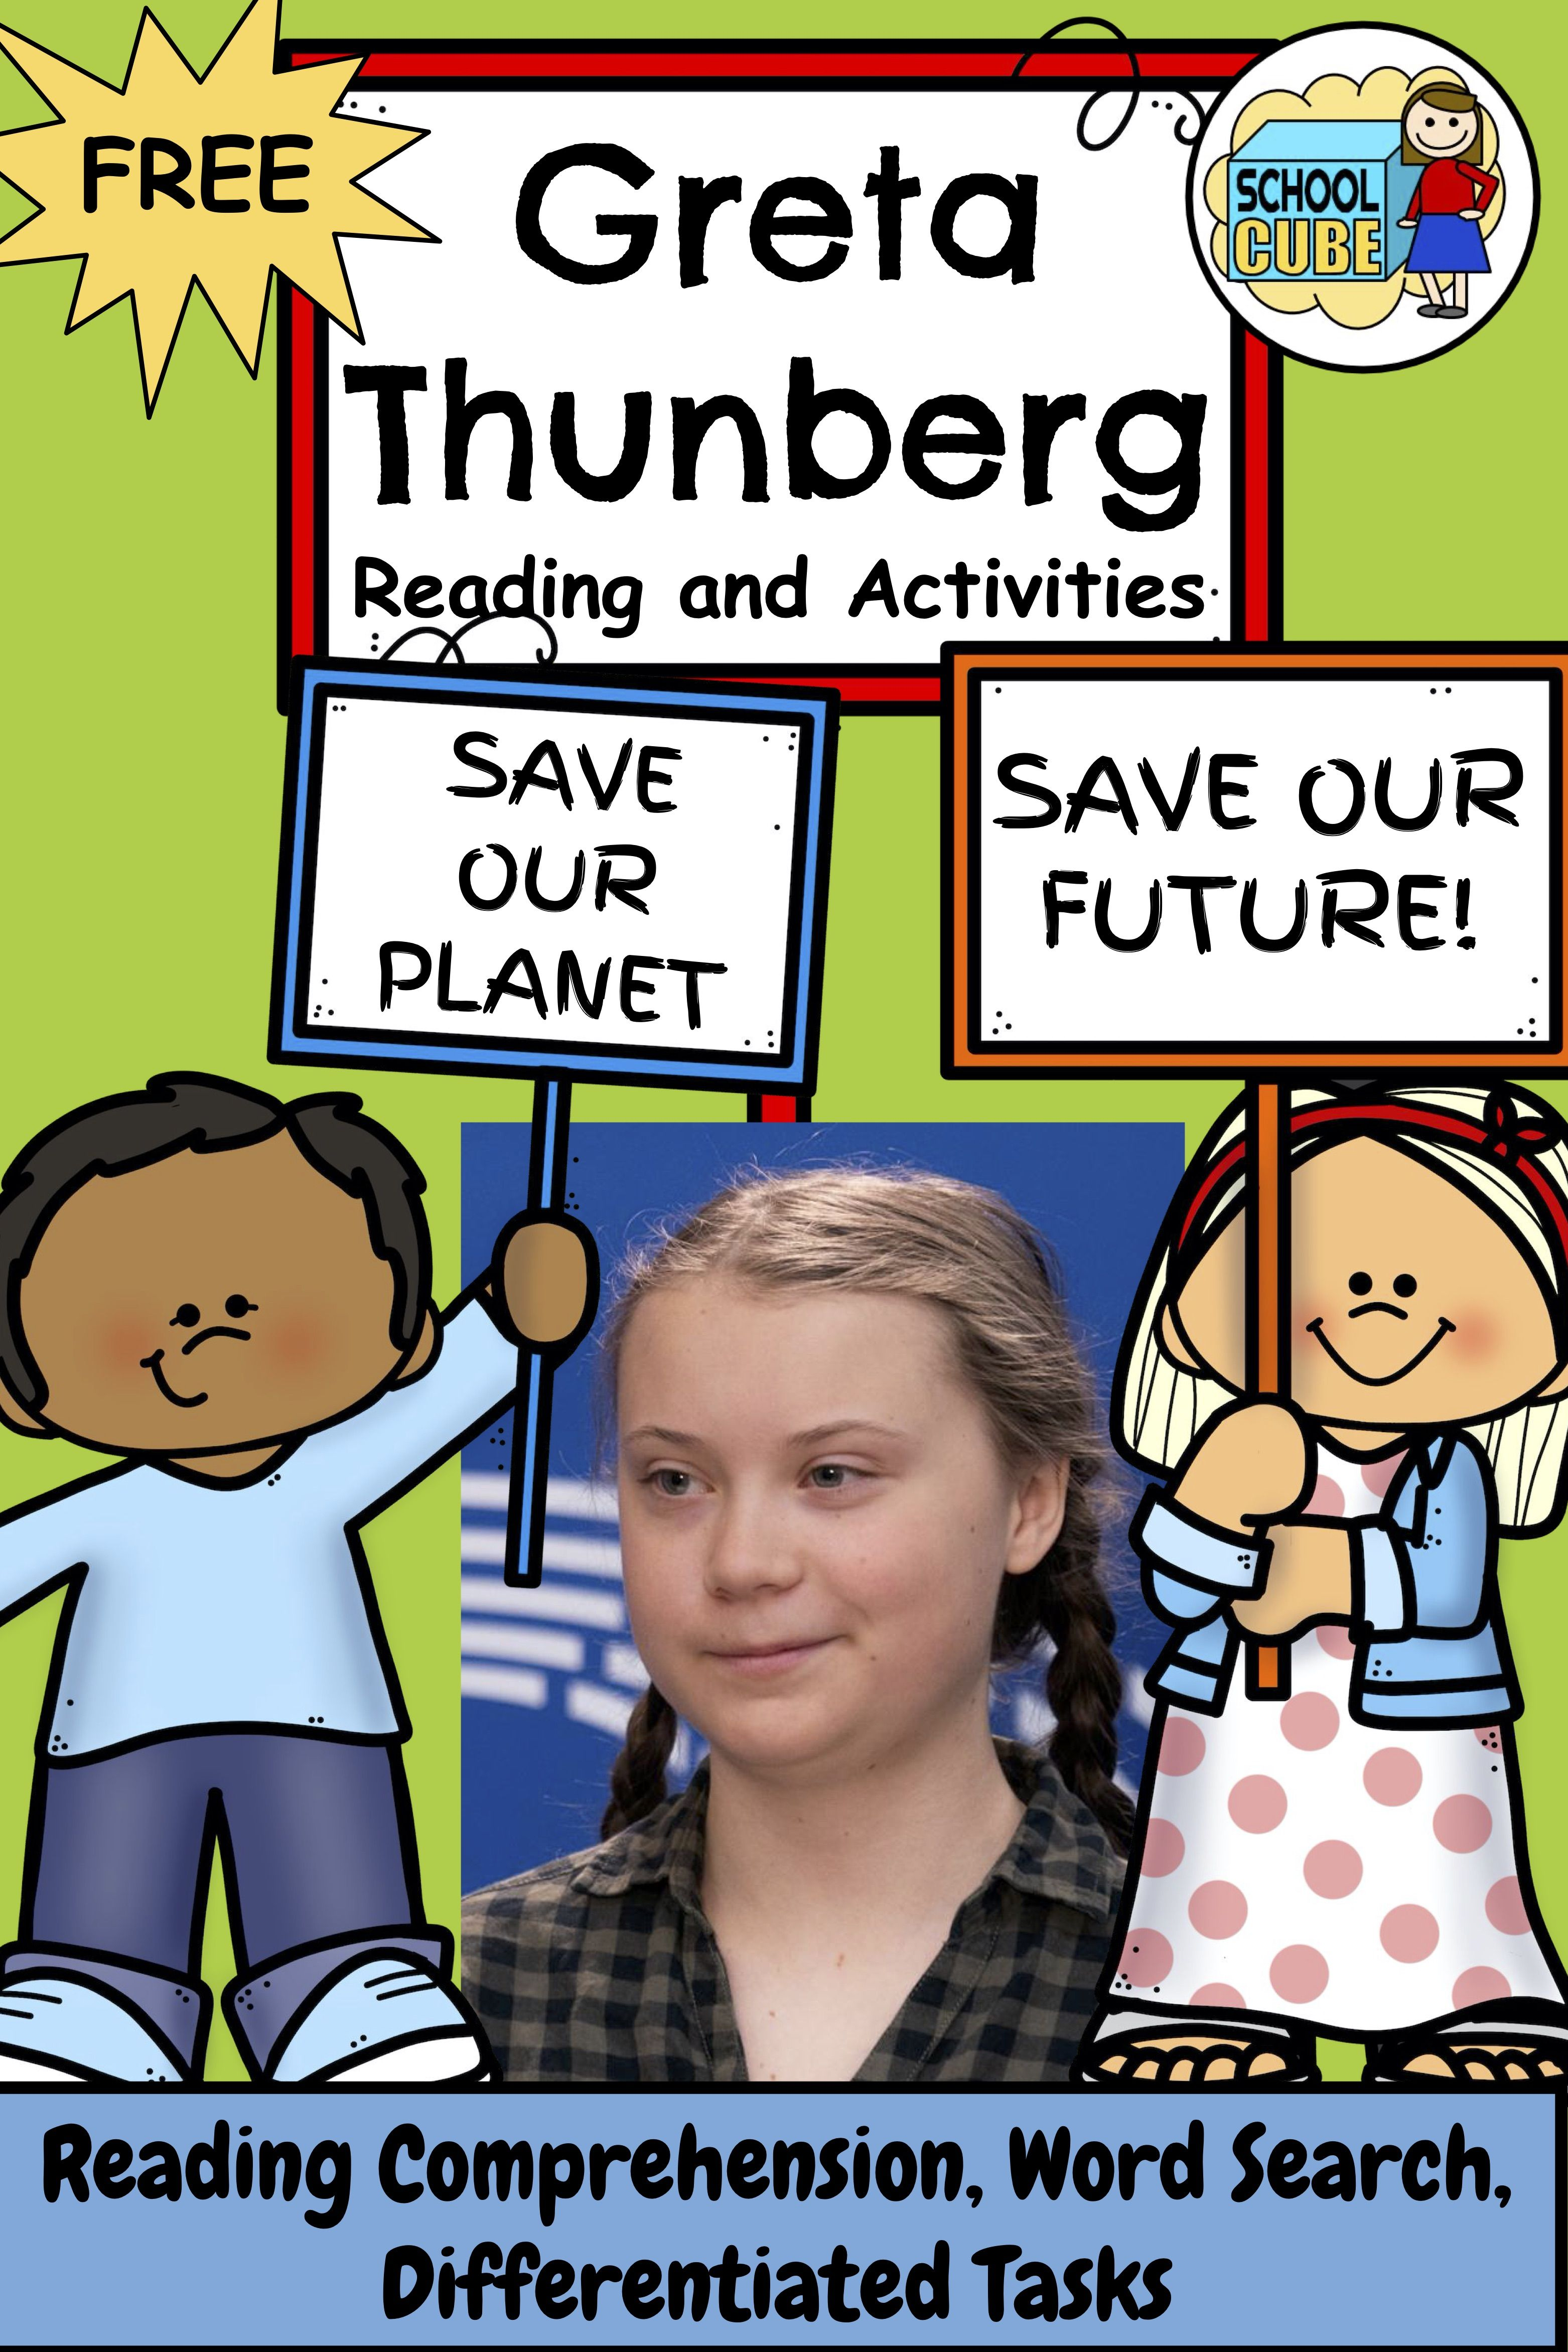 Greta Thunberg Reading And Activities Differentiated